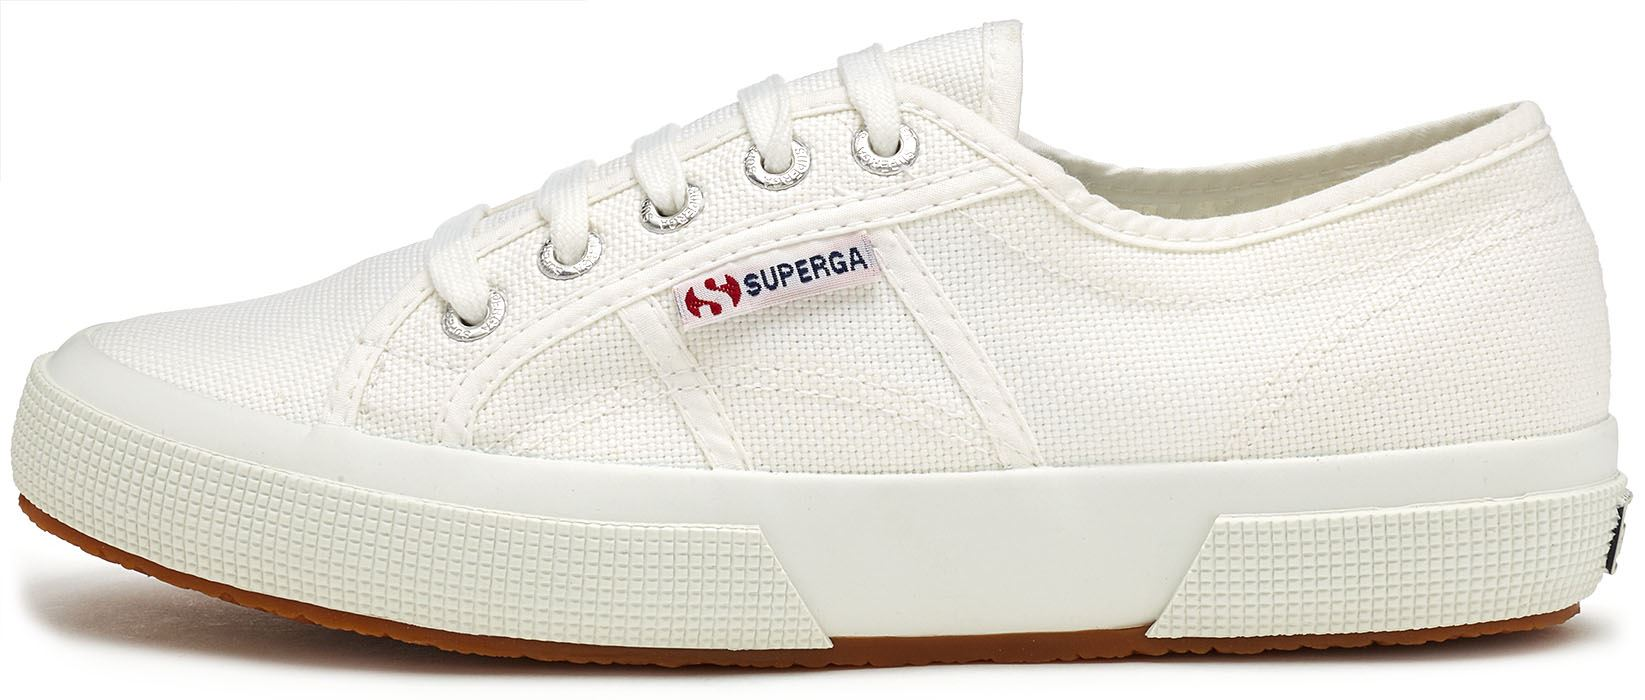 Chaussures Superga 2750 Fashion unisexe